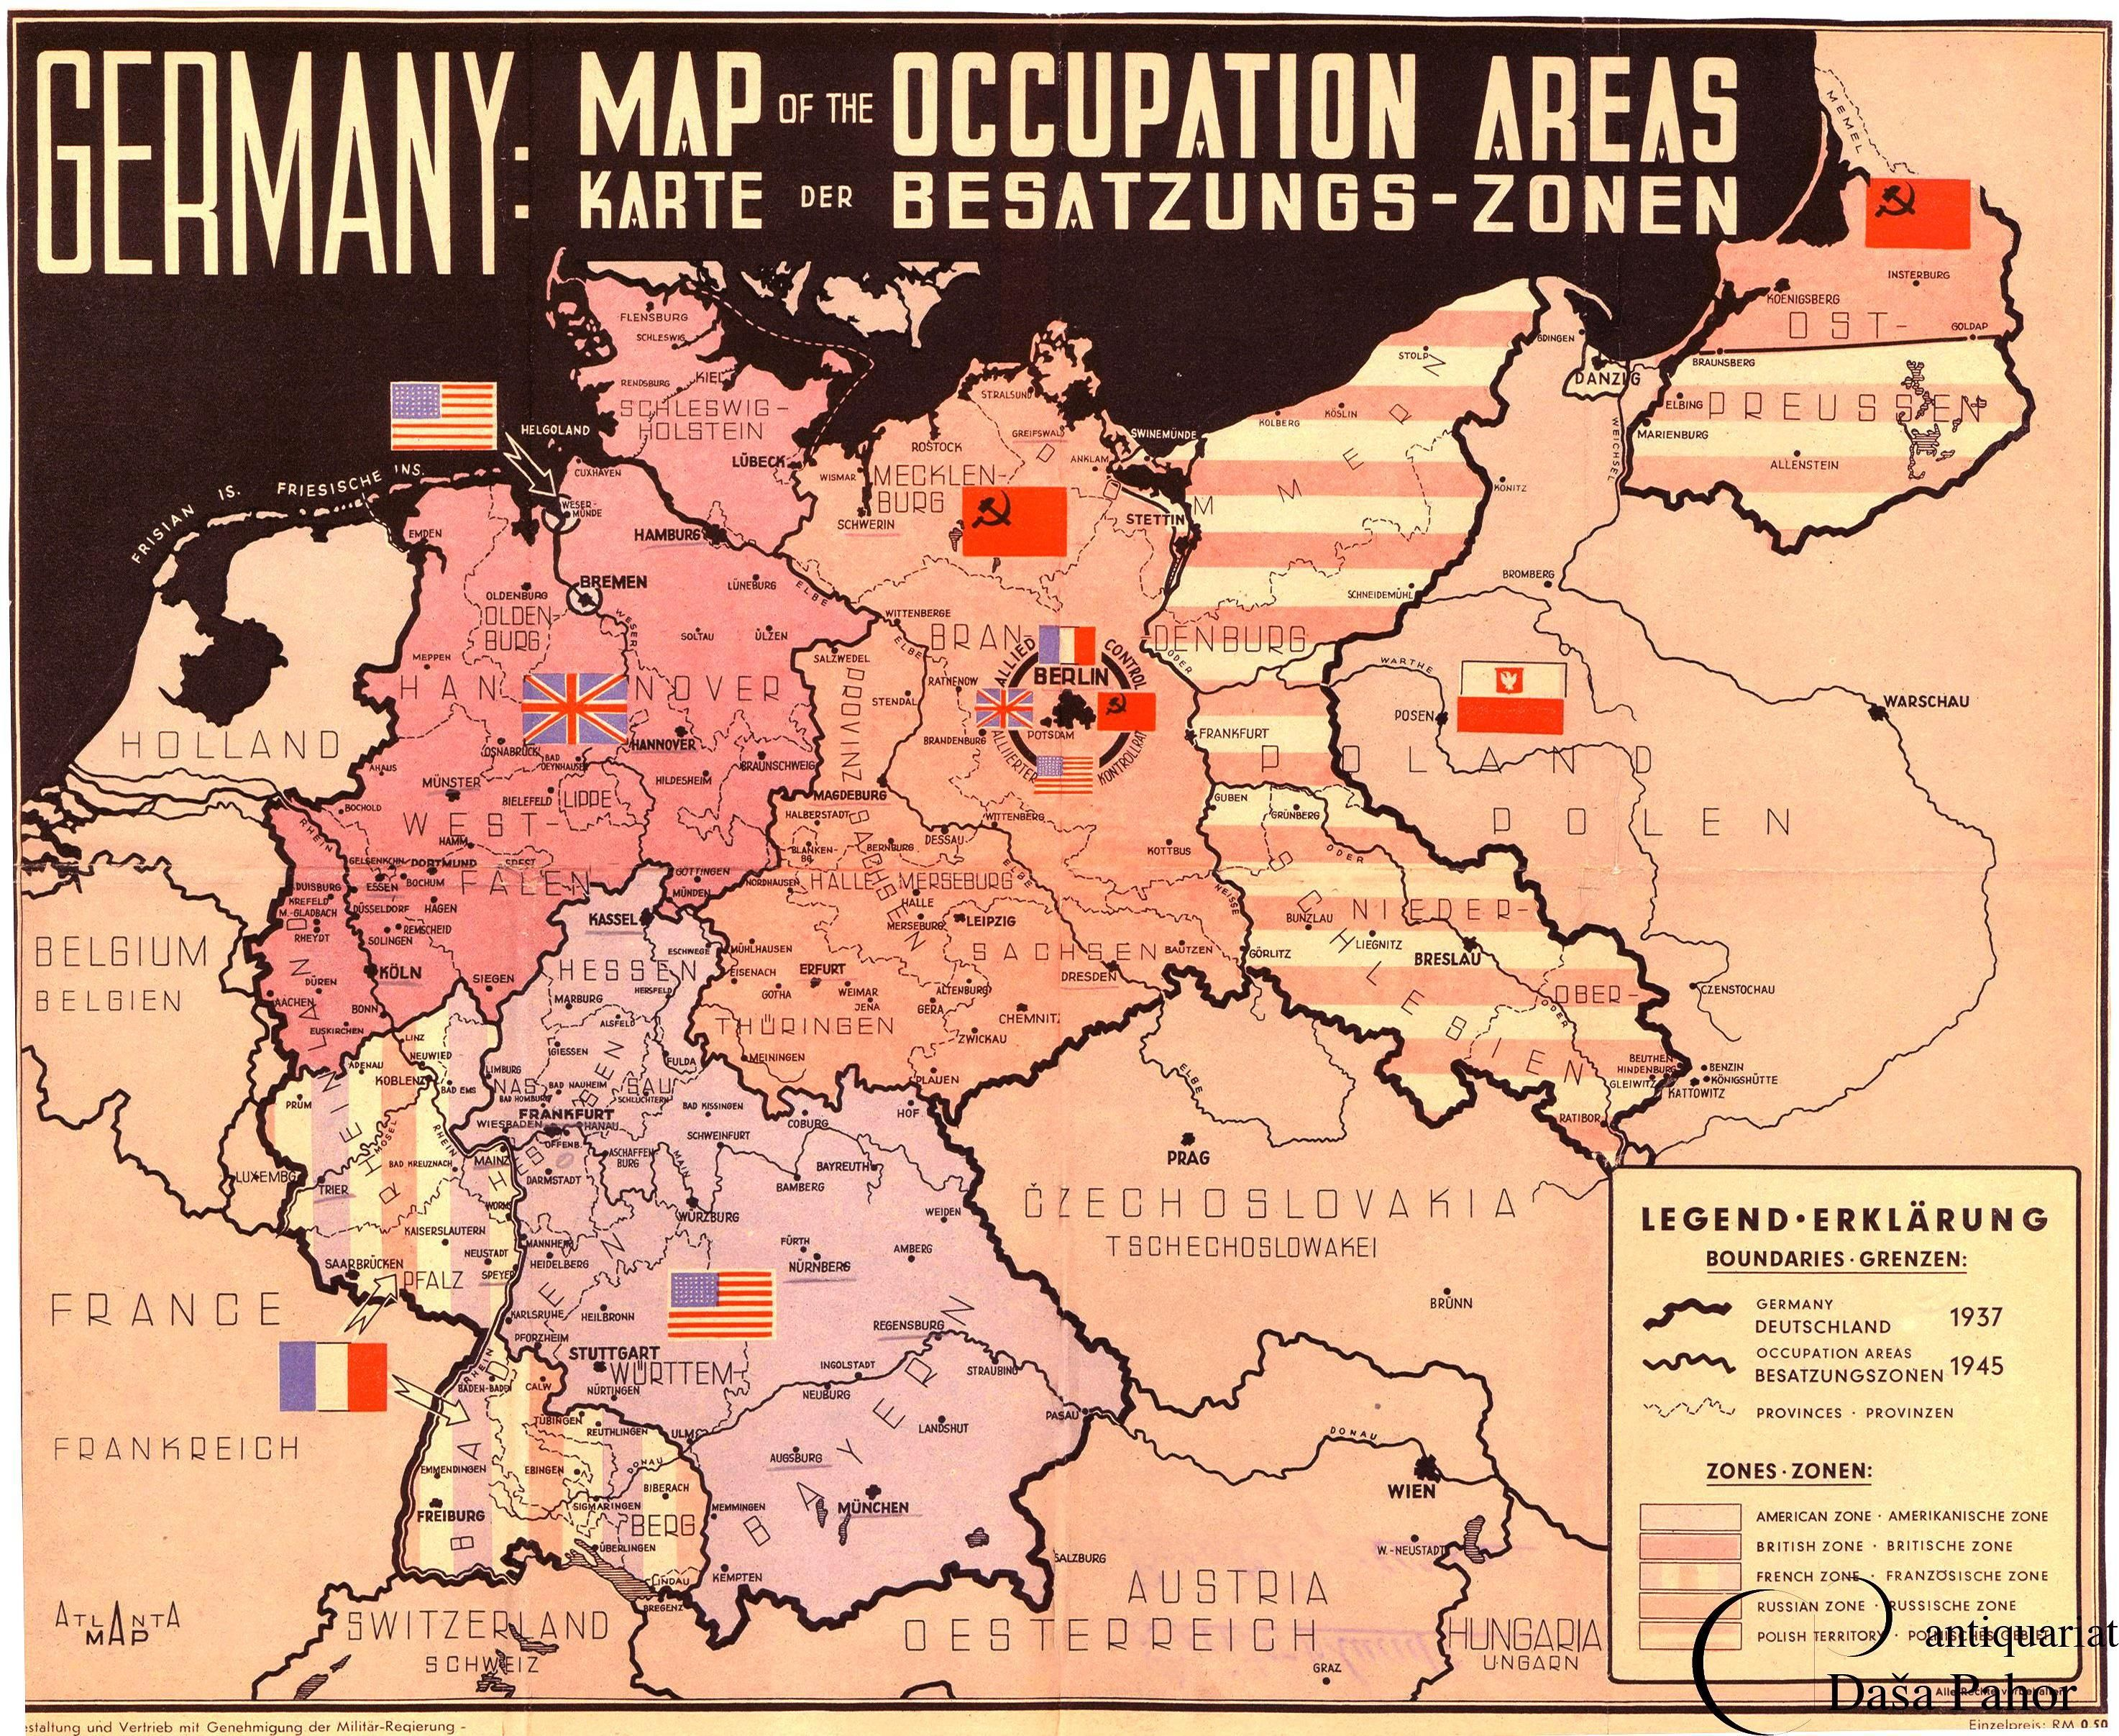 1945 Zones of Occupation for Germany map in 2020 Germany